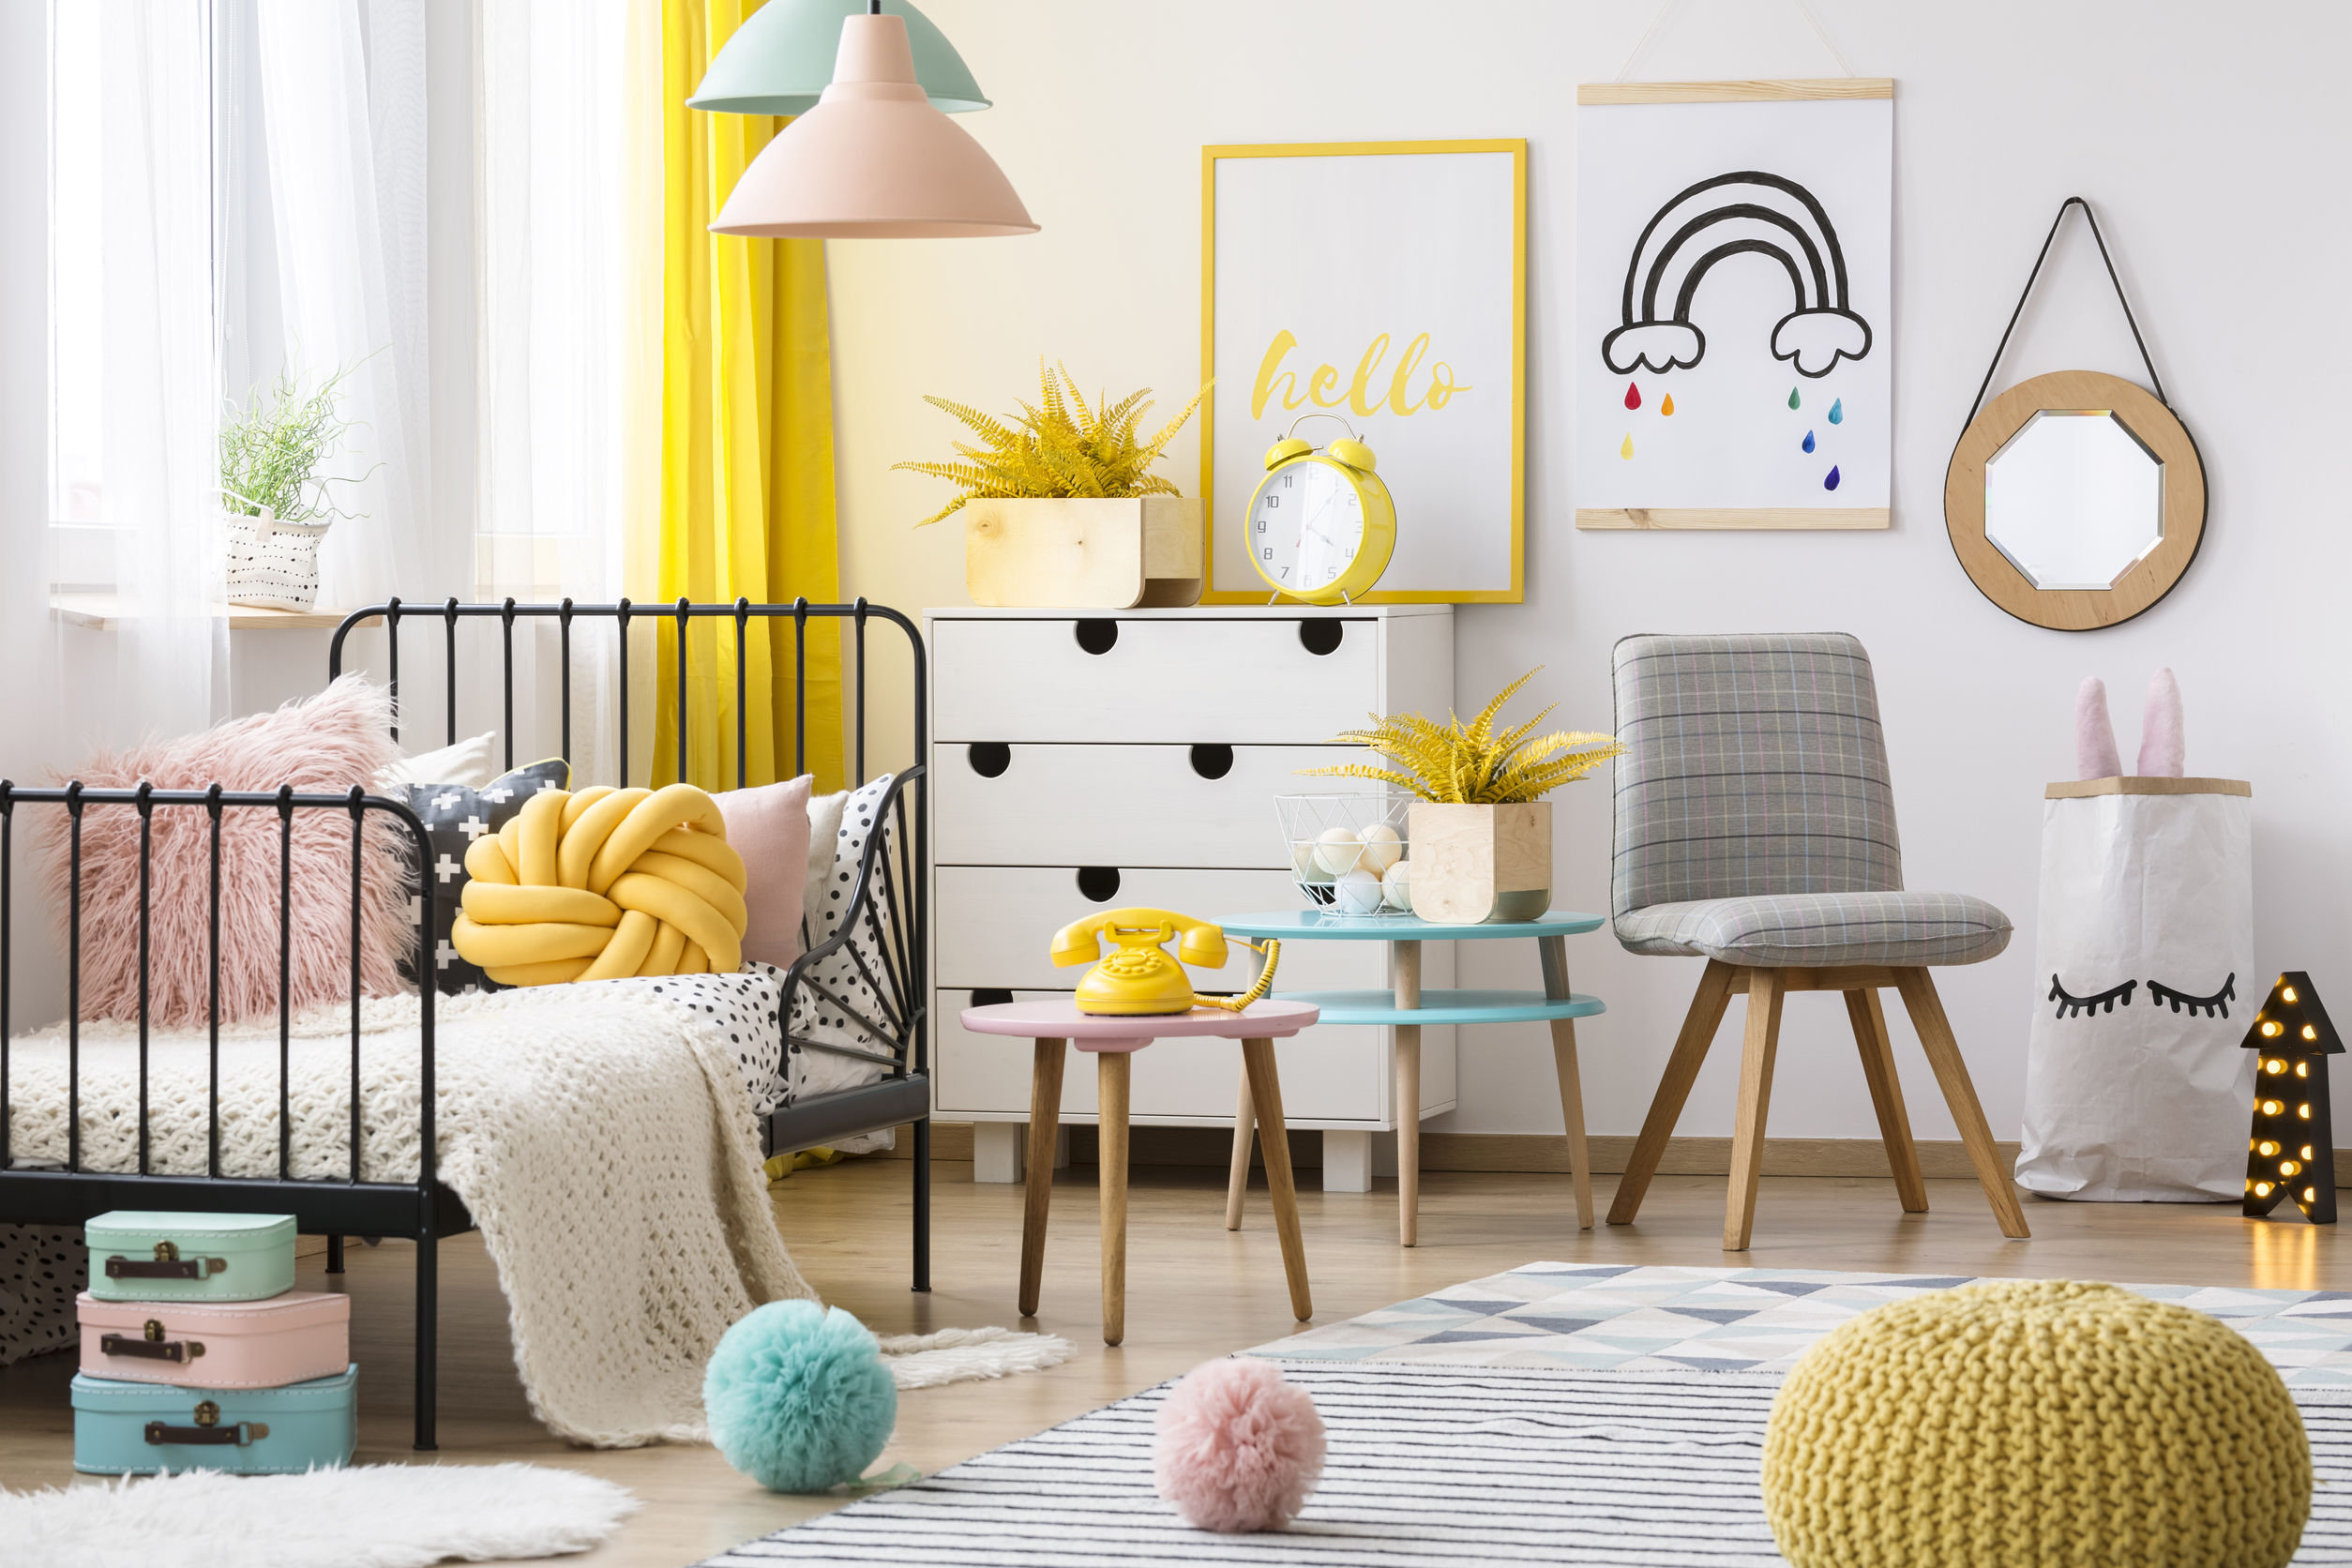 Colorful kid's bedroom interior